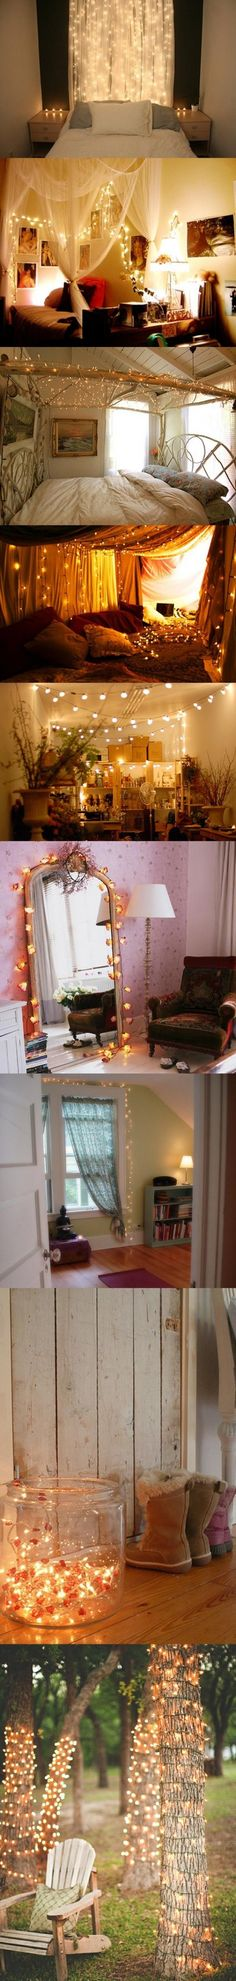 Christmas Lights #home #accessories @Caryn Scanlan Scanlan Scanlan Scanlan Scanlan Scanlan Pittman This! Is what i want to do at dads house for my bedroom!! Going to need your help!